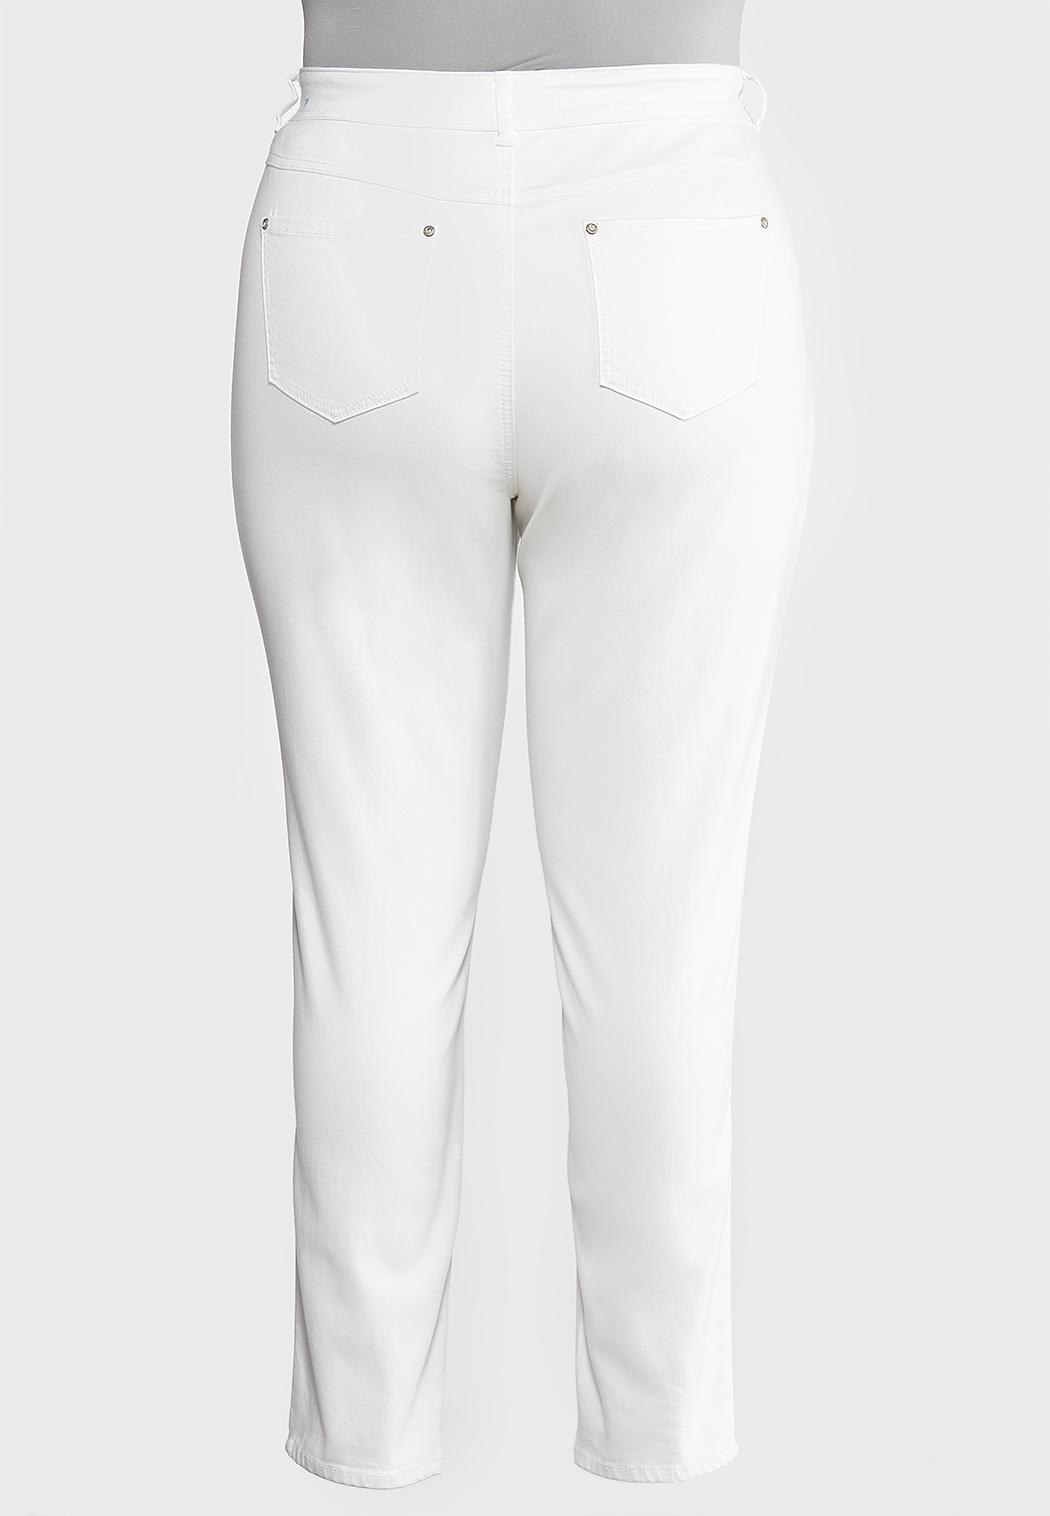 Plus Extended Skinny Stretch Jeans (Item #43888942)